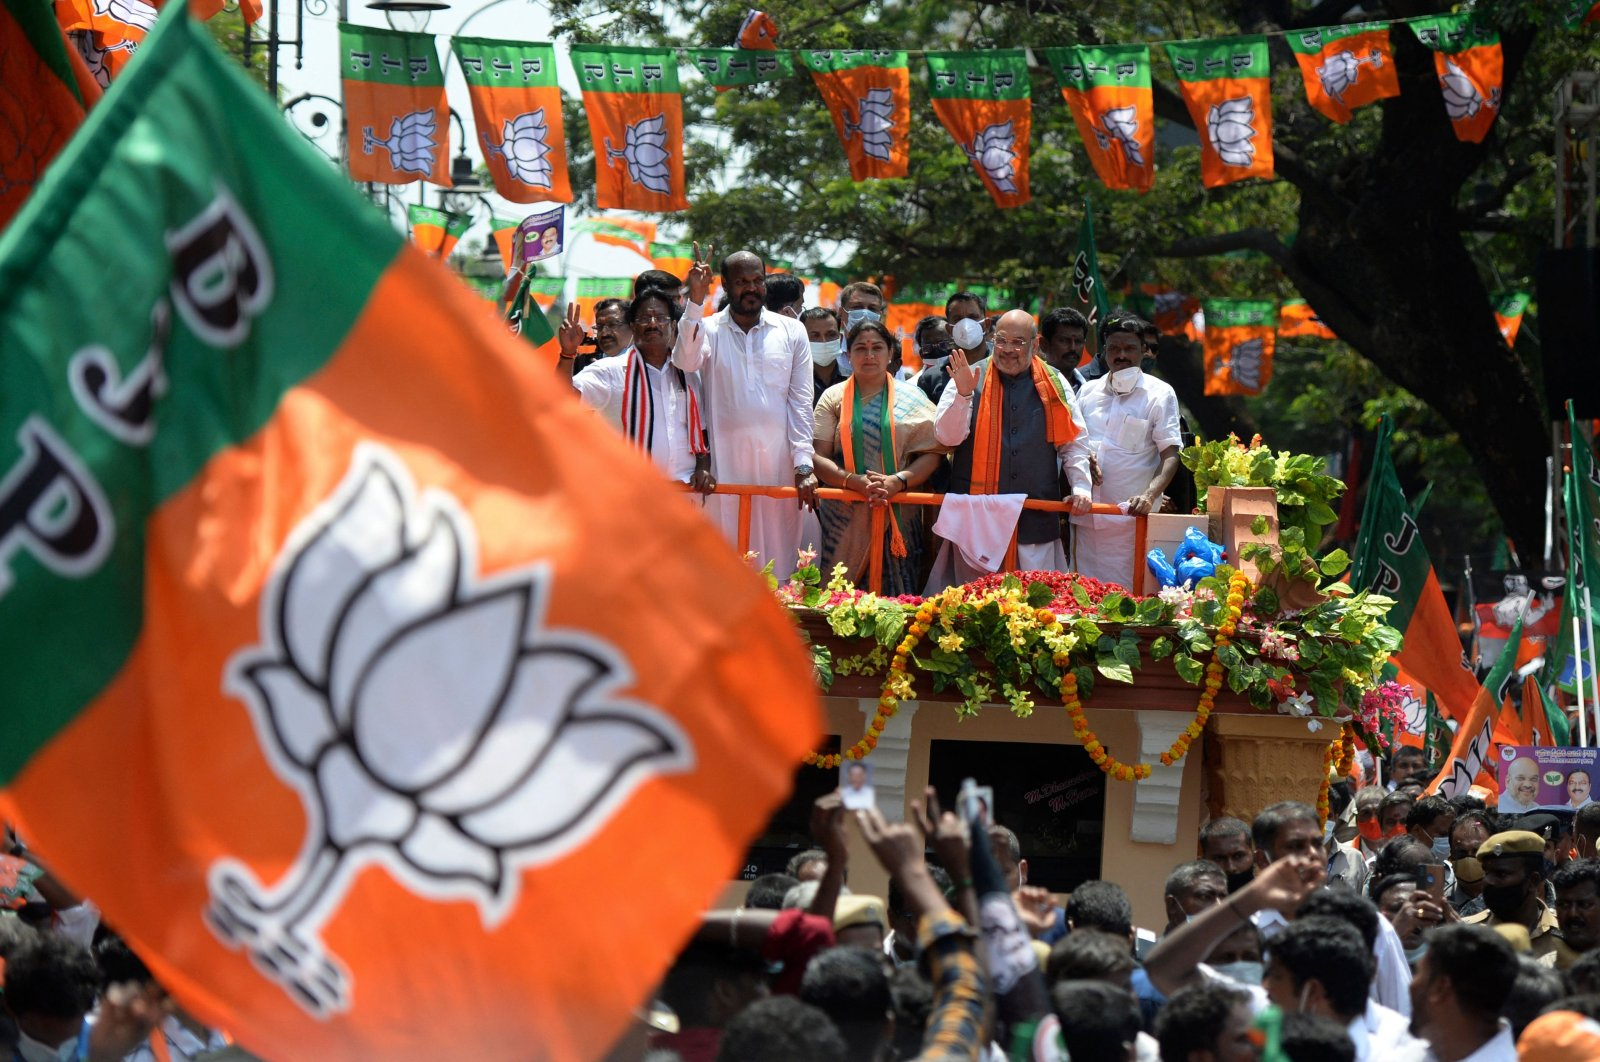 Amit Shah (top 3R), India's home minister and leader of the Bharatiya Janata Party (BJP), takes part in a roadshow ahead of the Tamil Nadu state legislative assembly elections in Chennai, India, April 3, 2021. (AFP Photo)